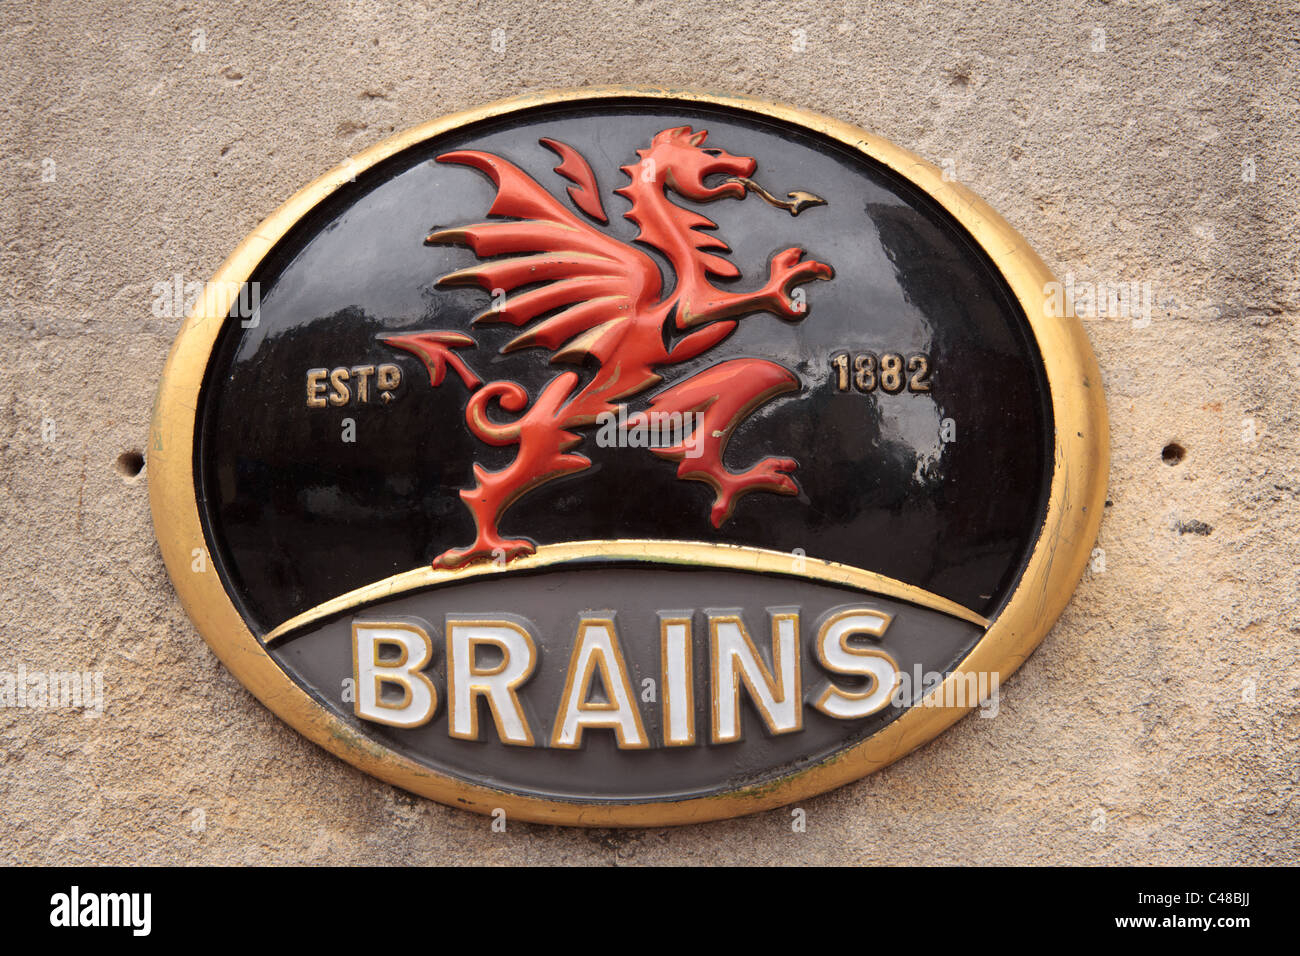 Brains Brewery plaque, Cardiff, South Wales, UK - Stock Image